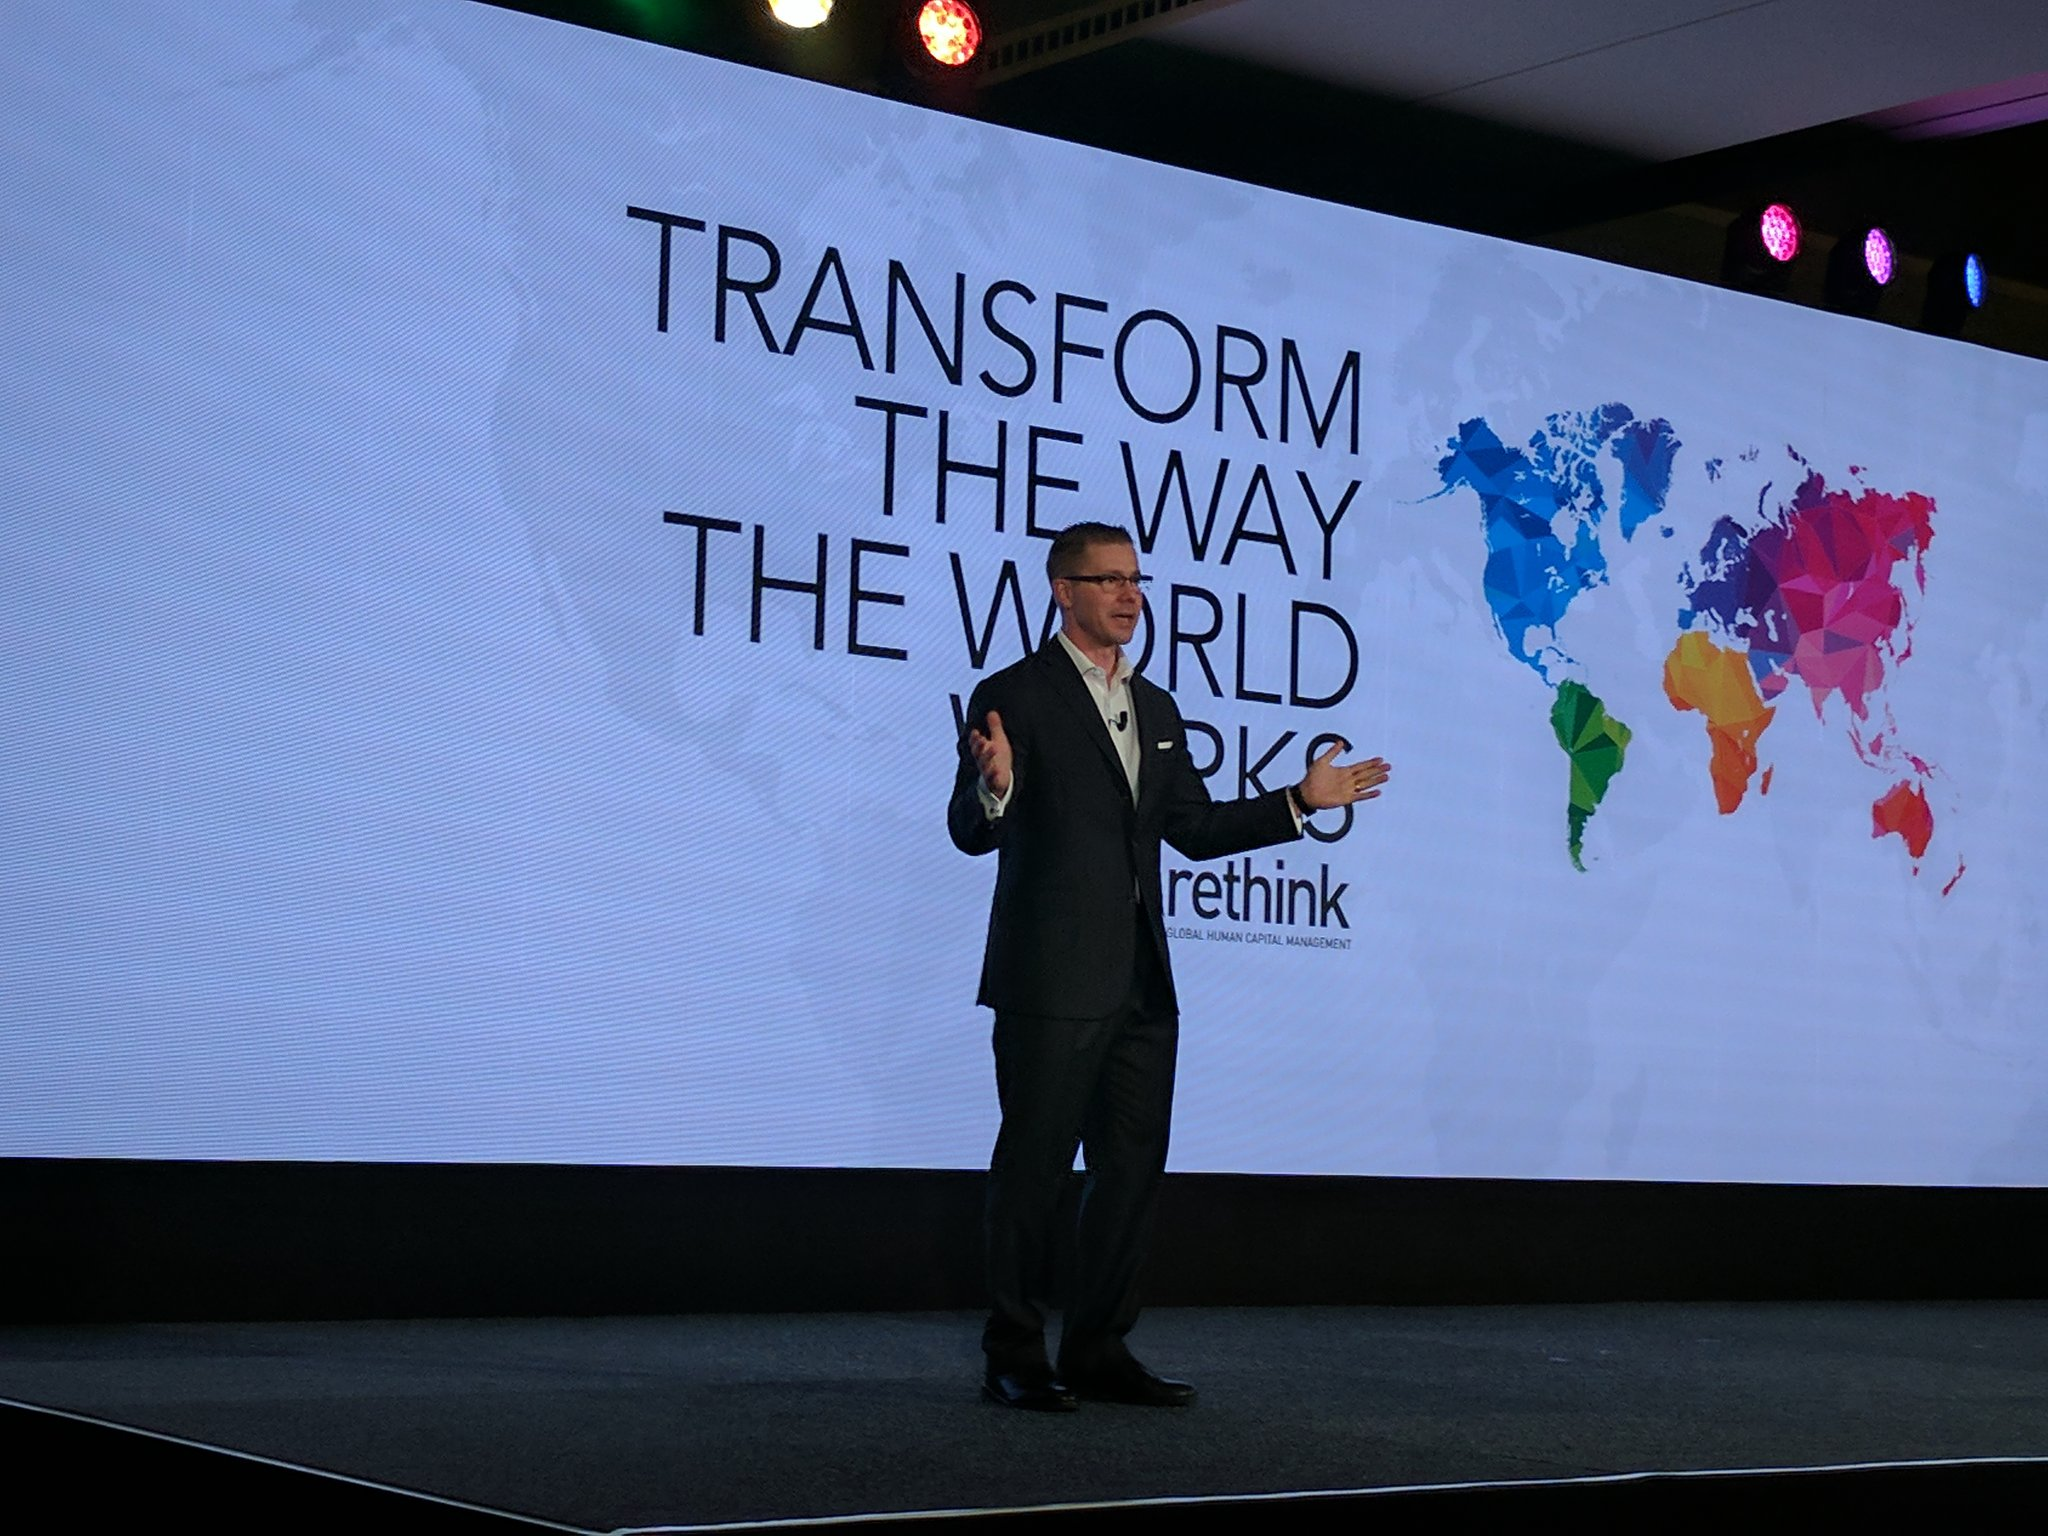 And @HorvathTodd opens the day at #ADPReThink https://t.co/EYZF0tAkOY